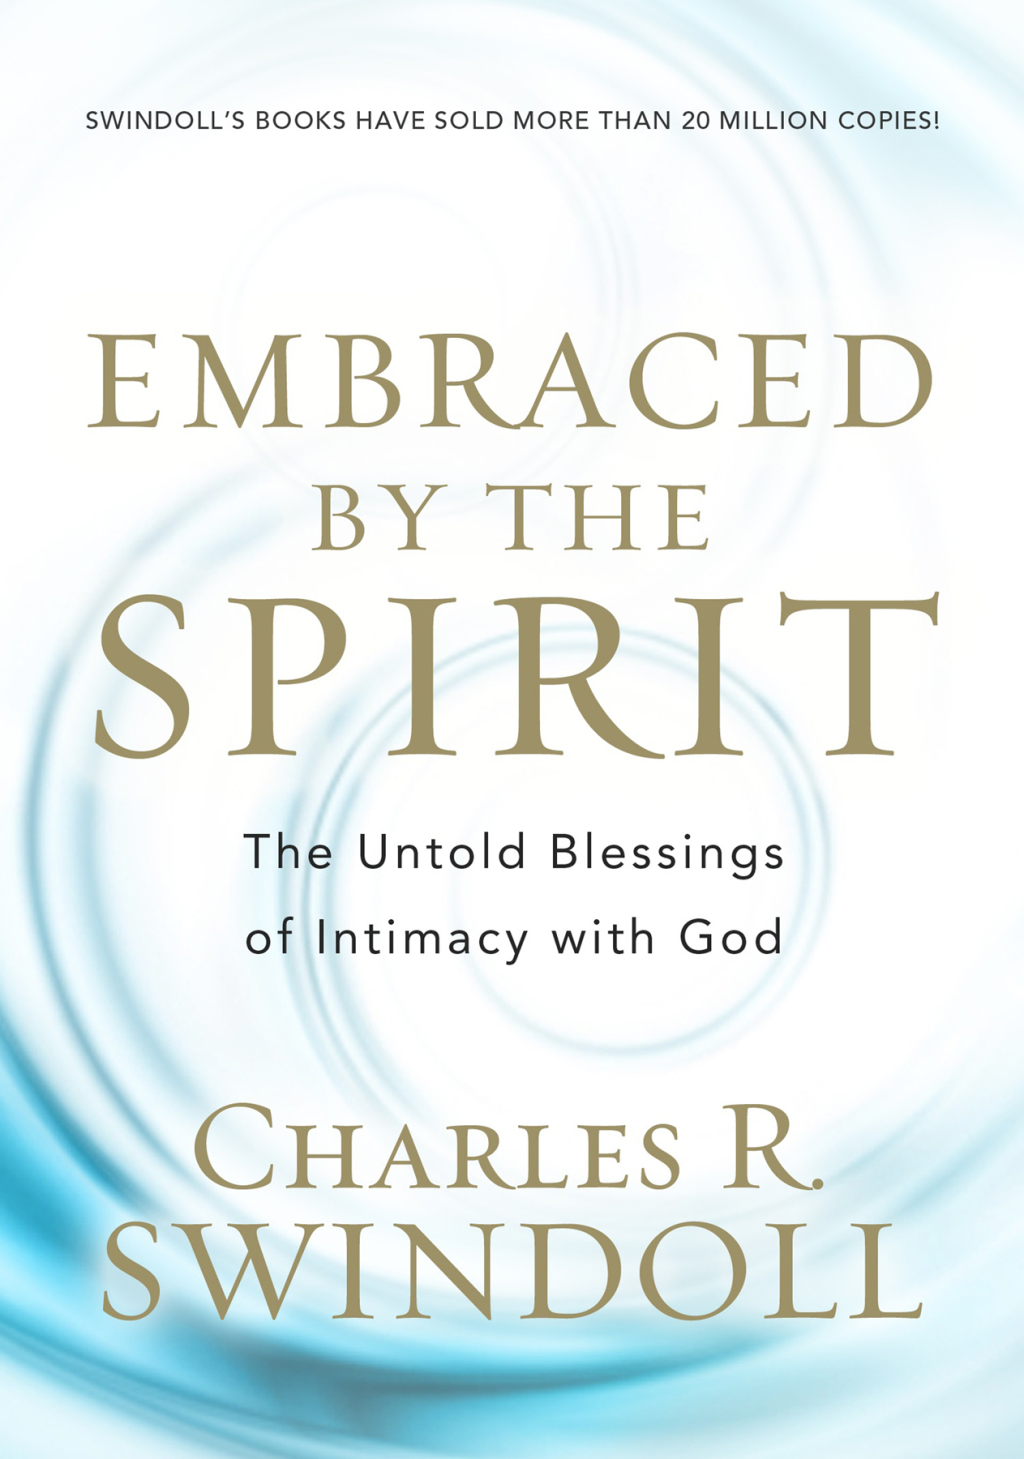 Embraced by the Spirit: The Untold Blessings of Intimacy with God (ebook) eBooks